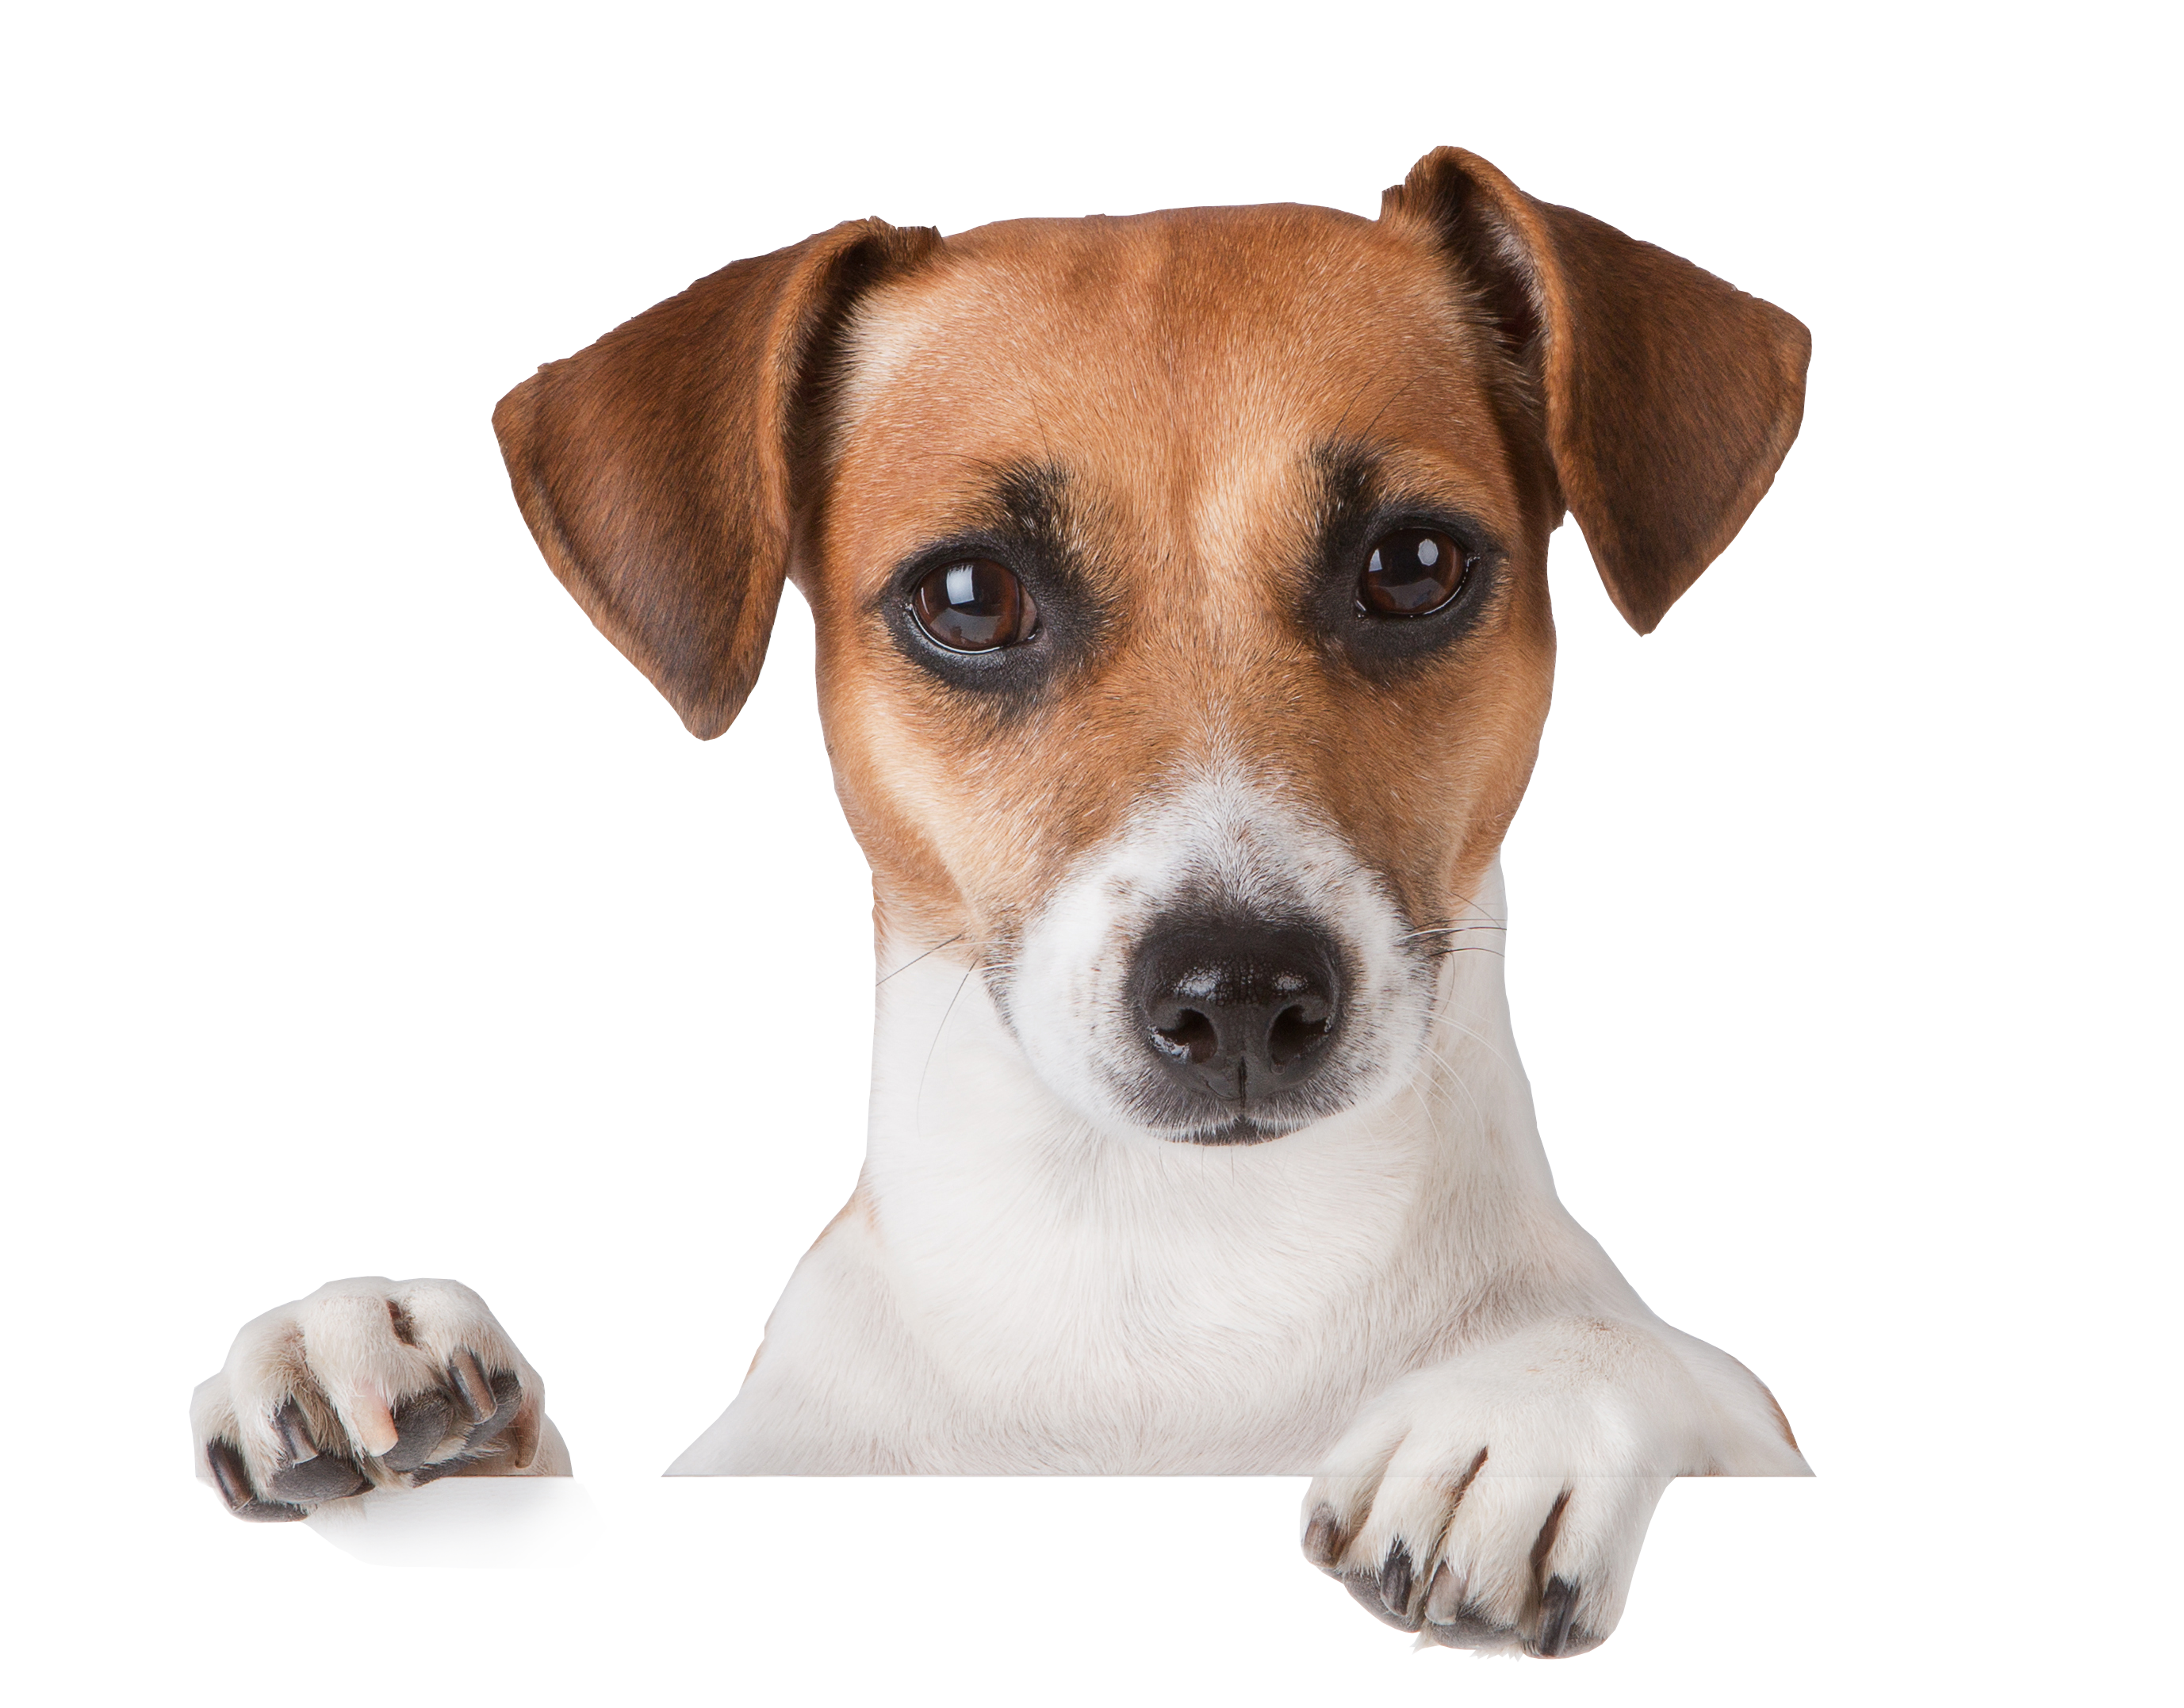 Dogs png. Dog image puppy pictures